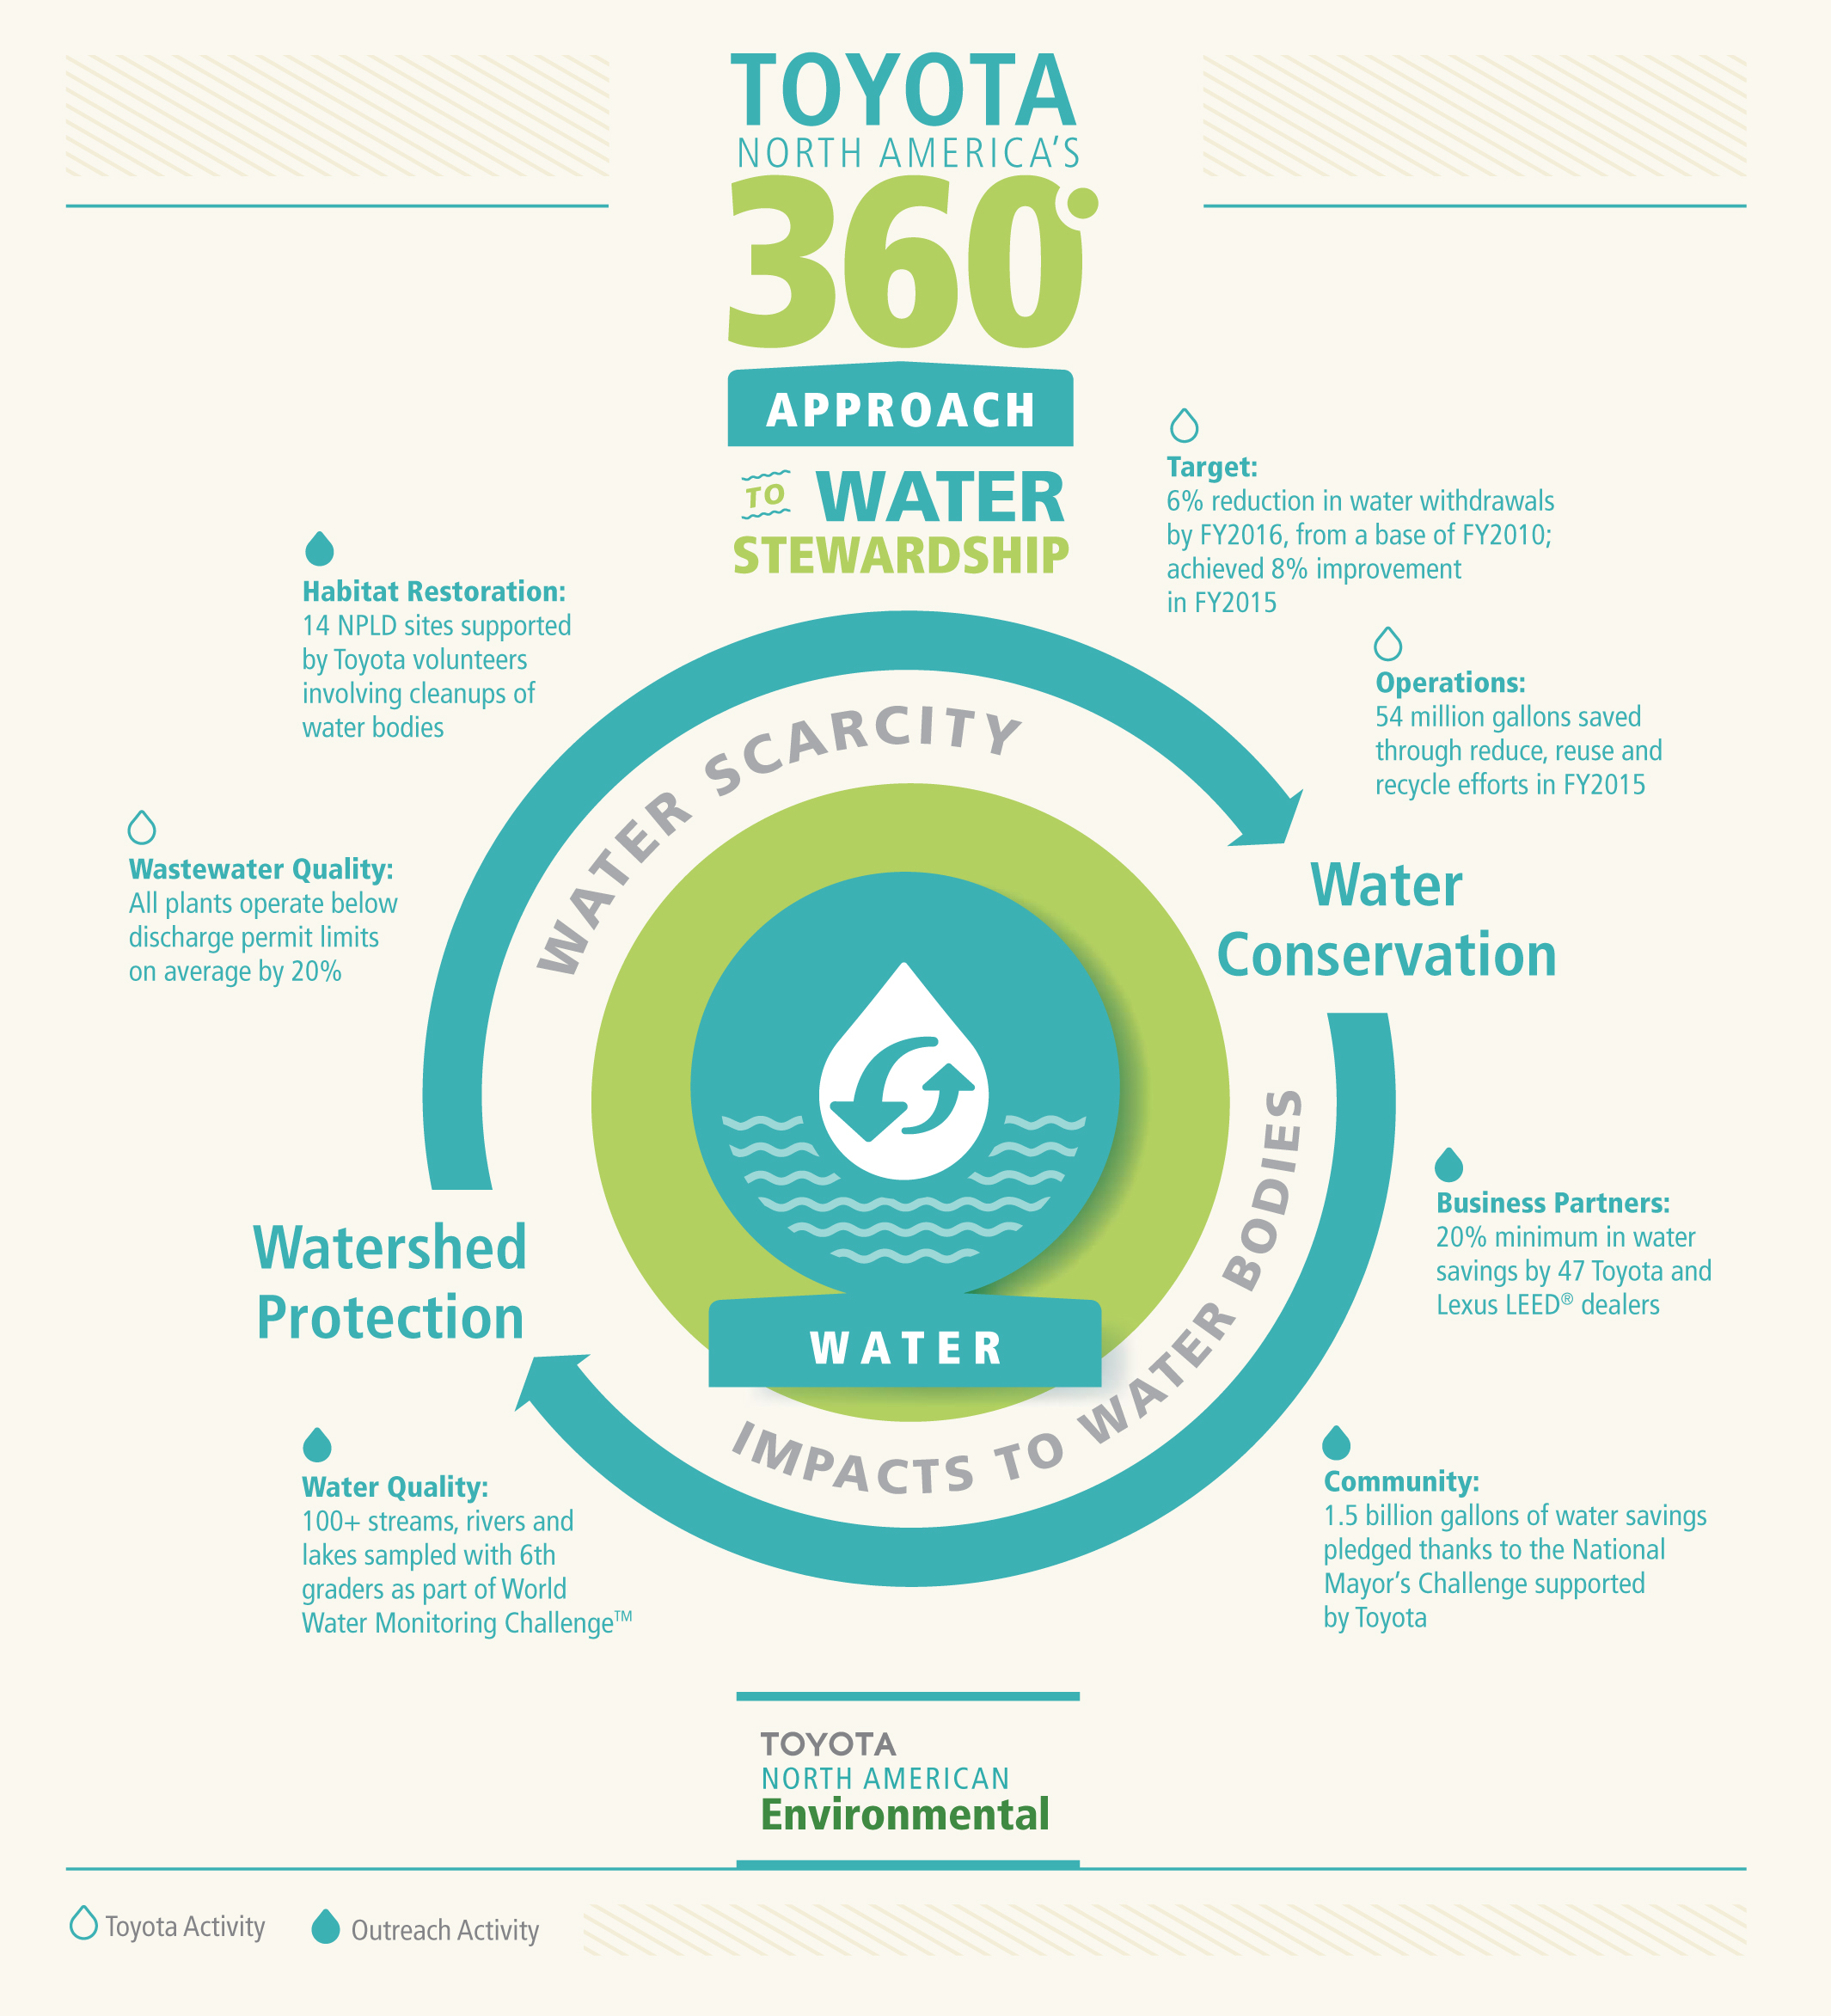 Toyota North America Aims To Conserve Water